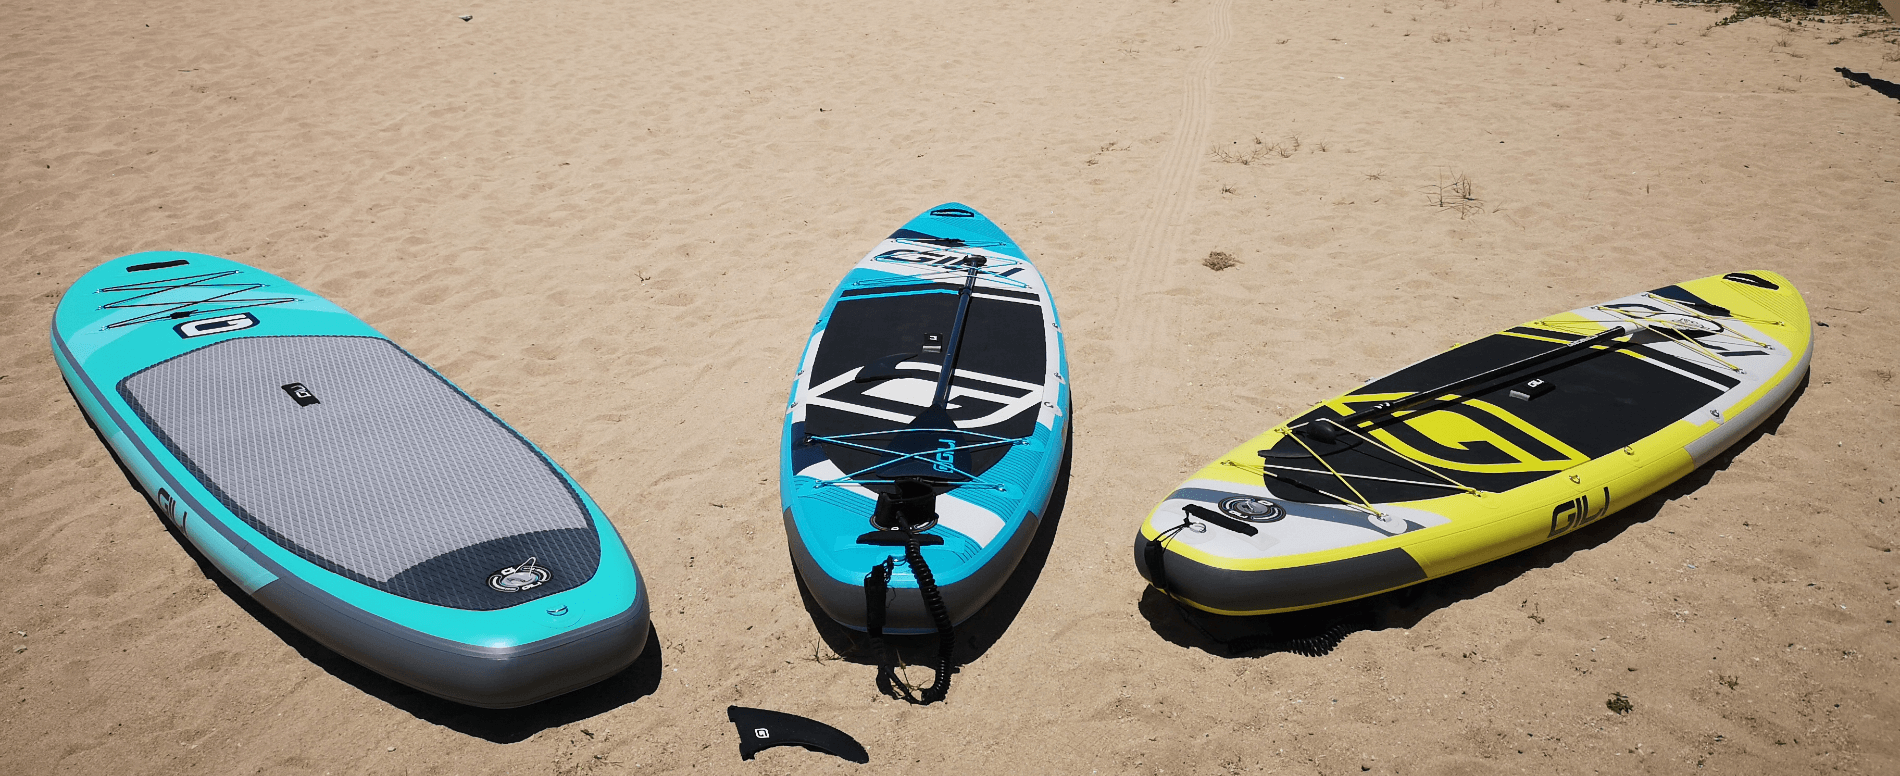 How Much Do Paddle Boards Cost?